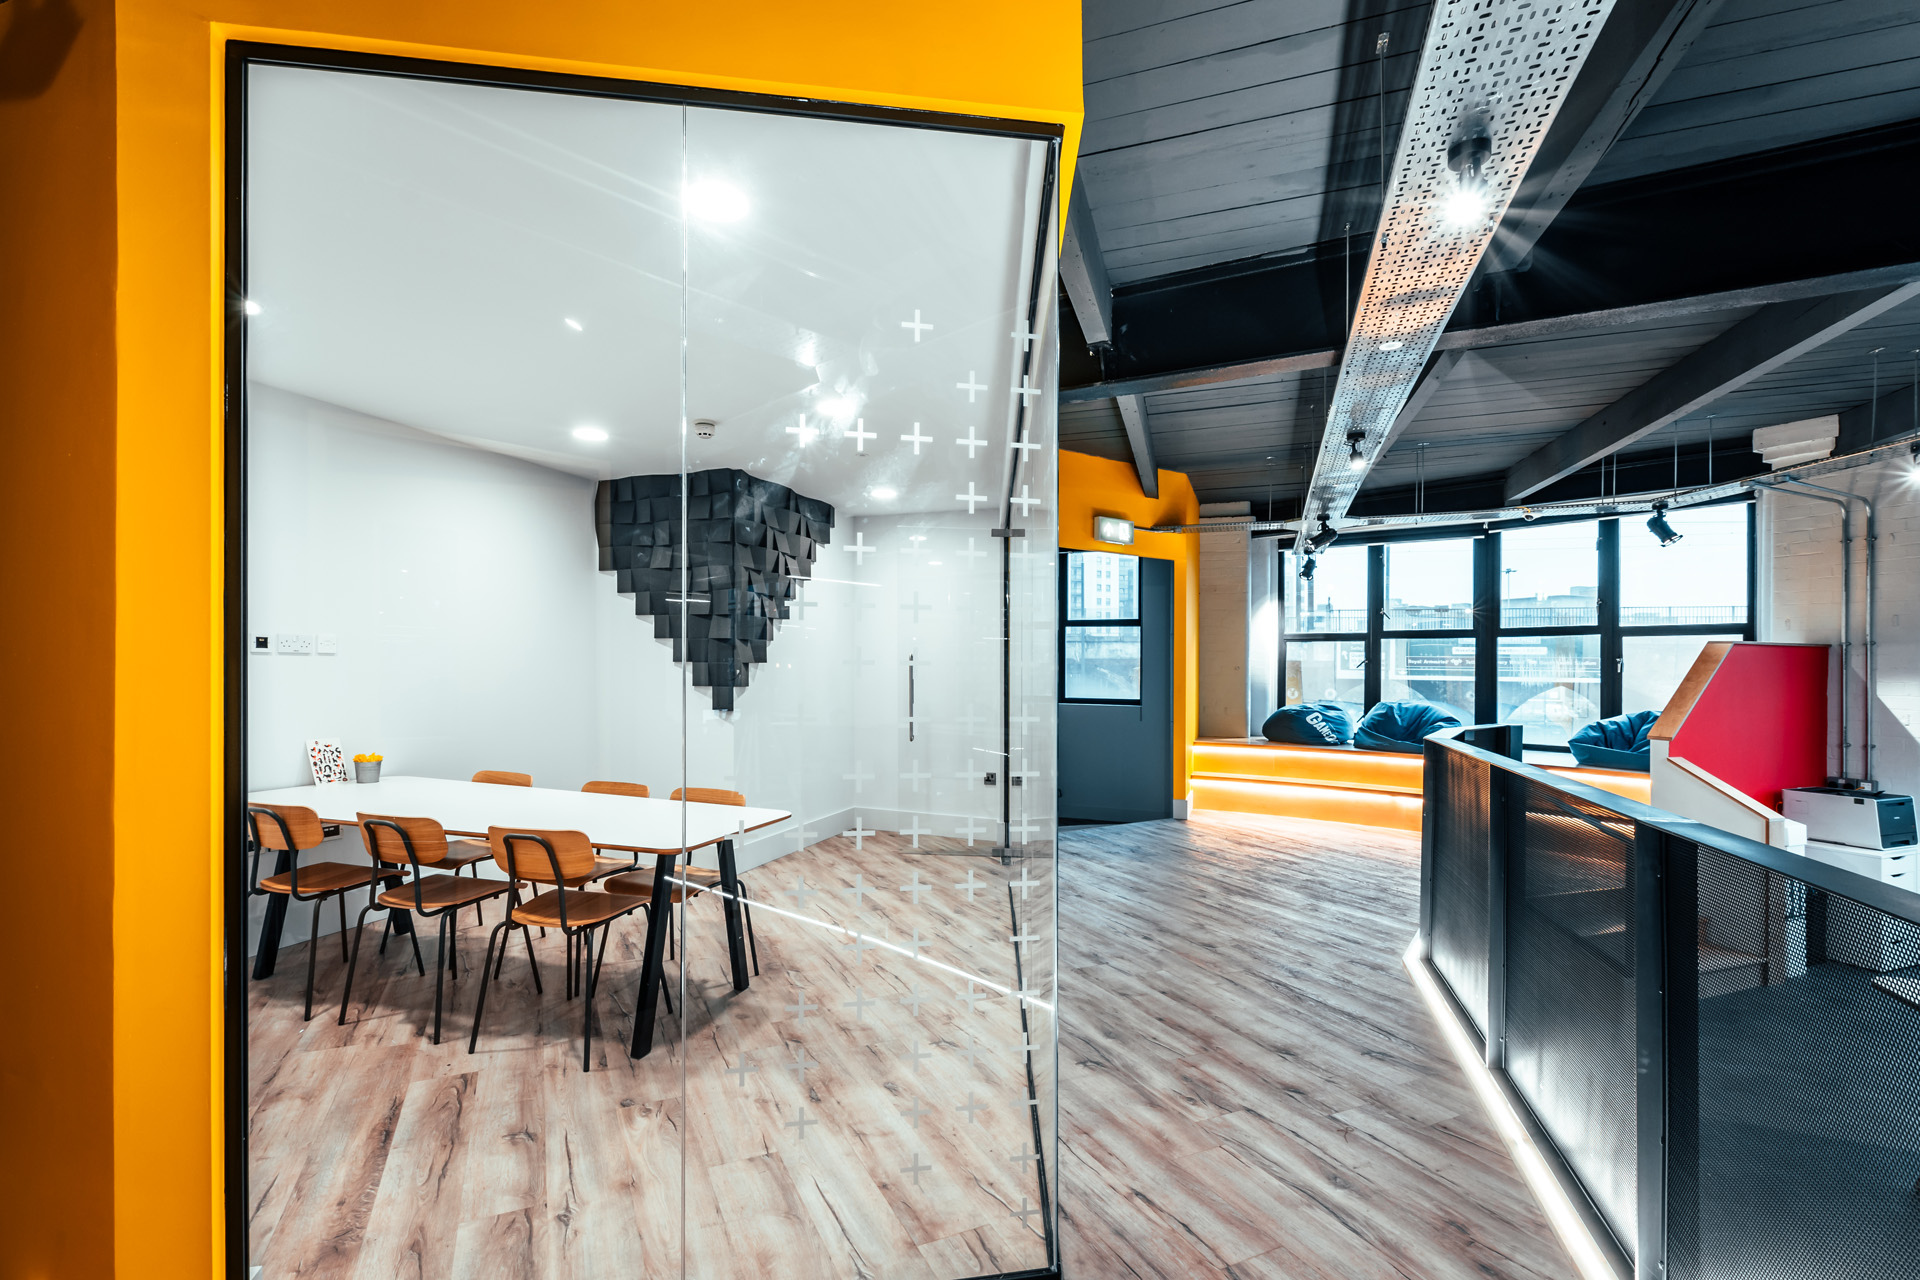 Five Office Design Trends to Look Out For in 2019